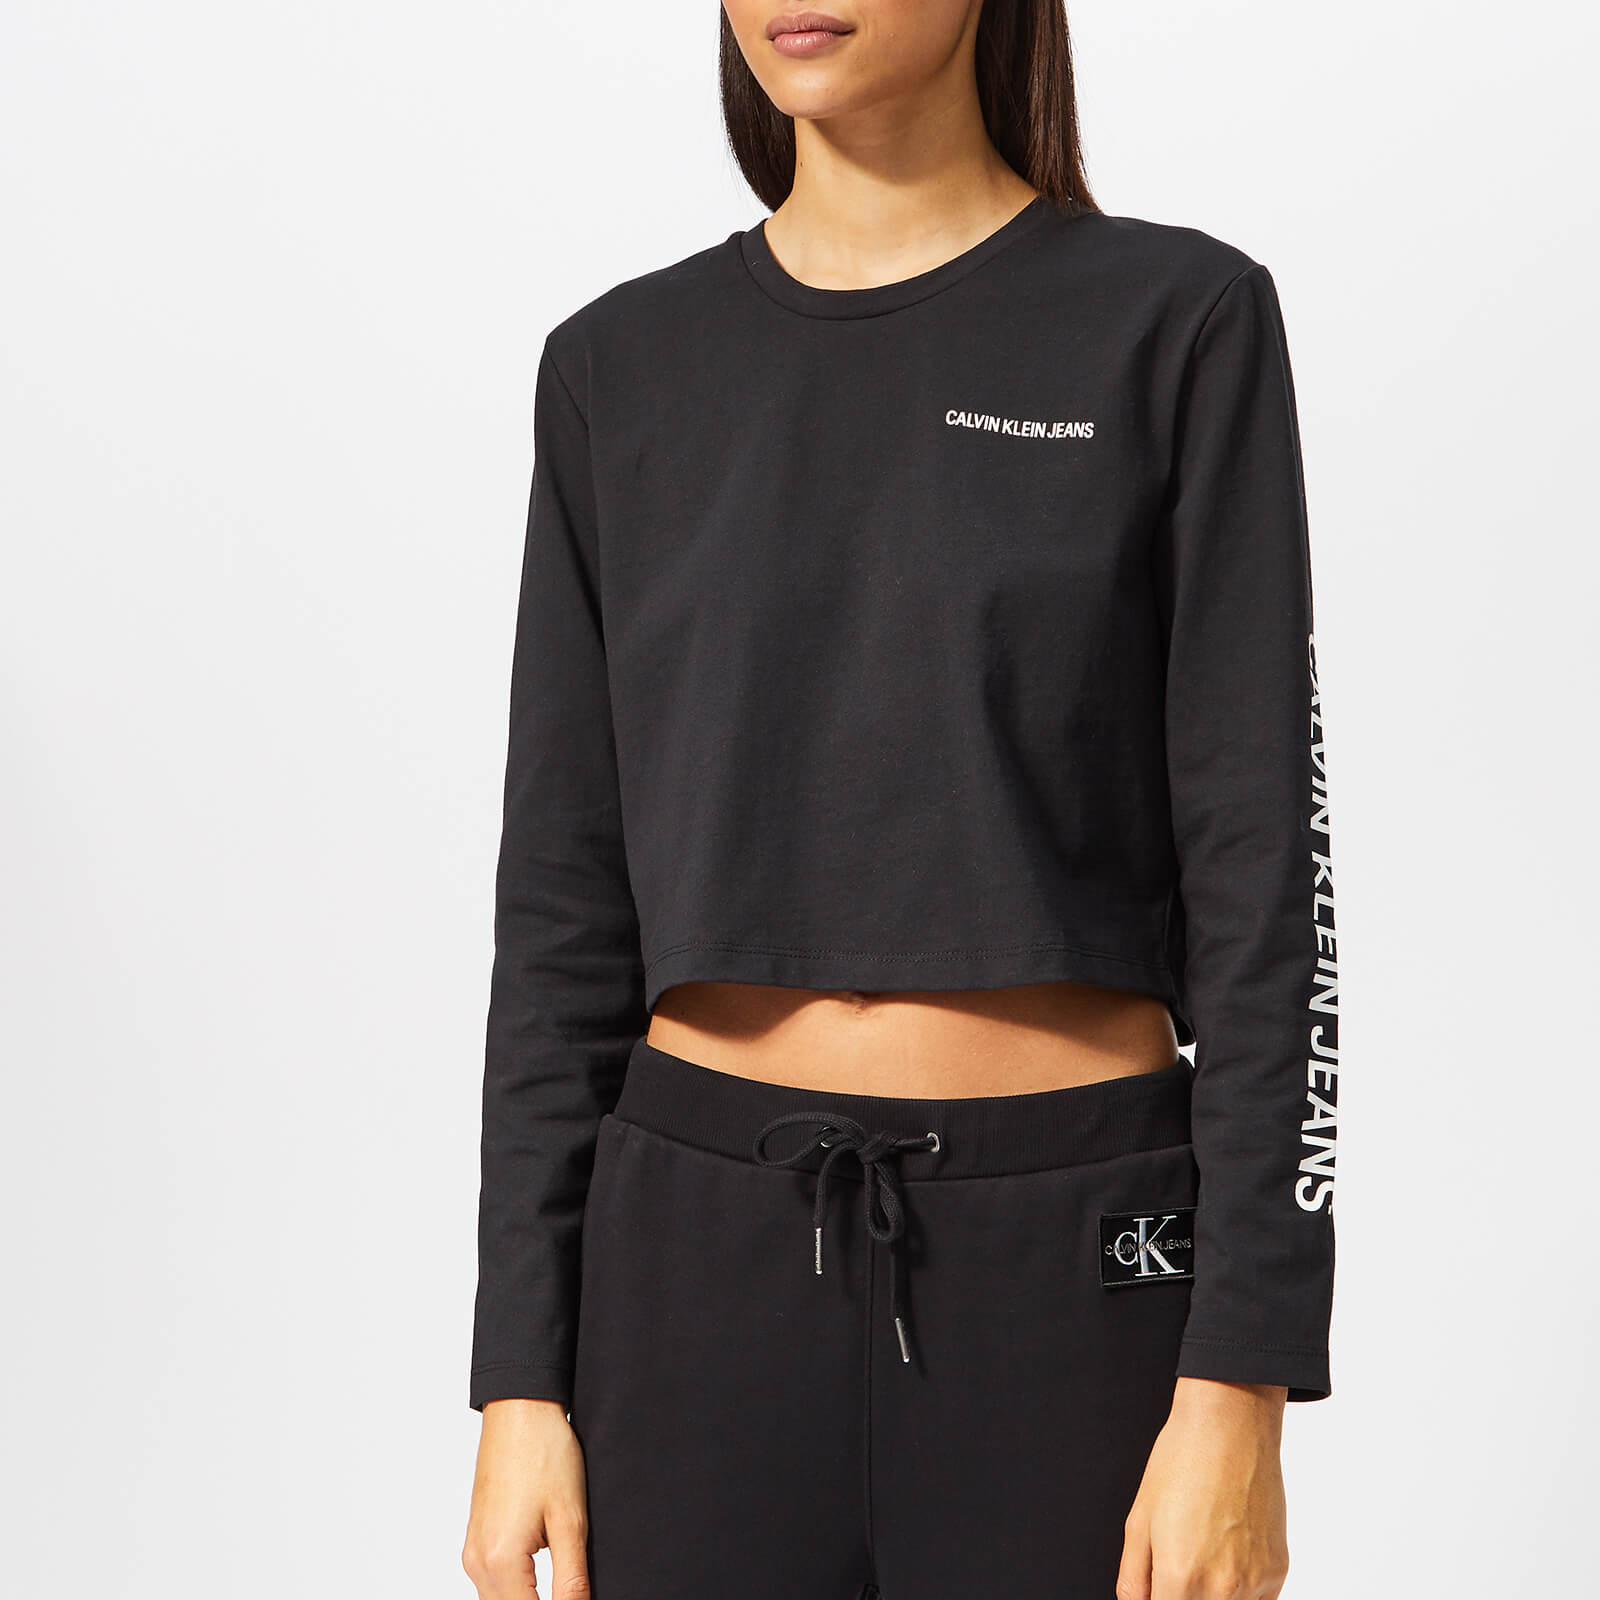 c7ca5d67 ... Calvin Klein Jeans Women's Long Sleeve Cropped T-Shirt - Black